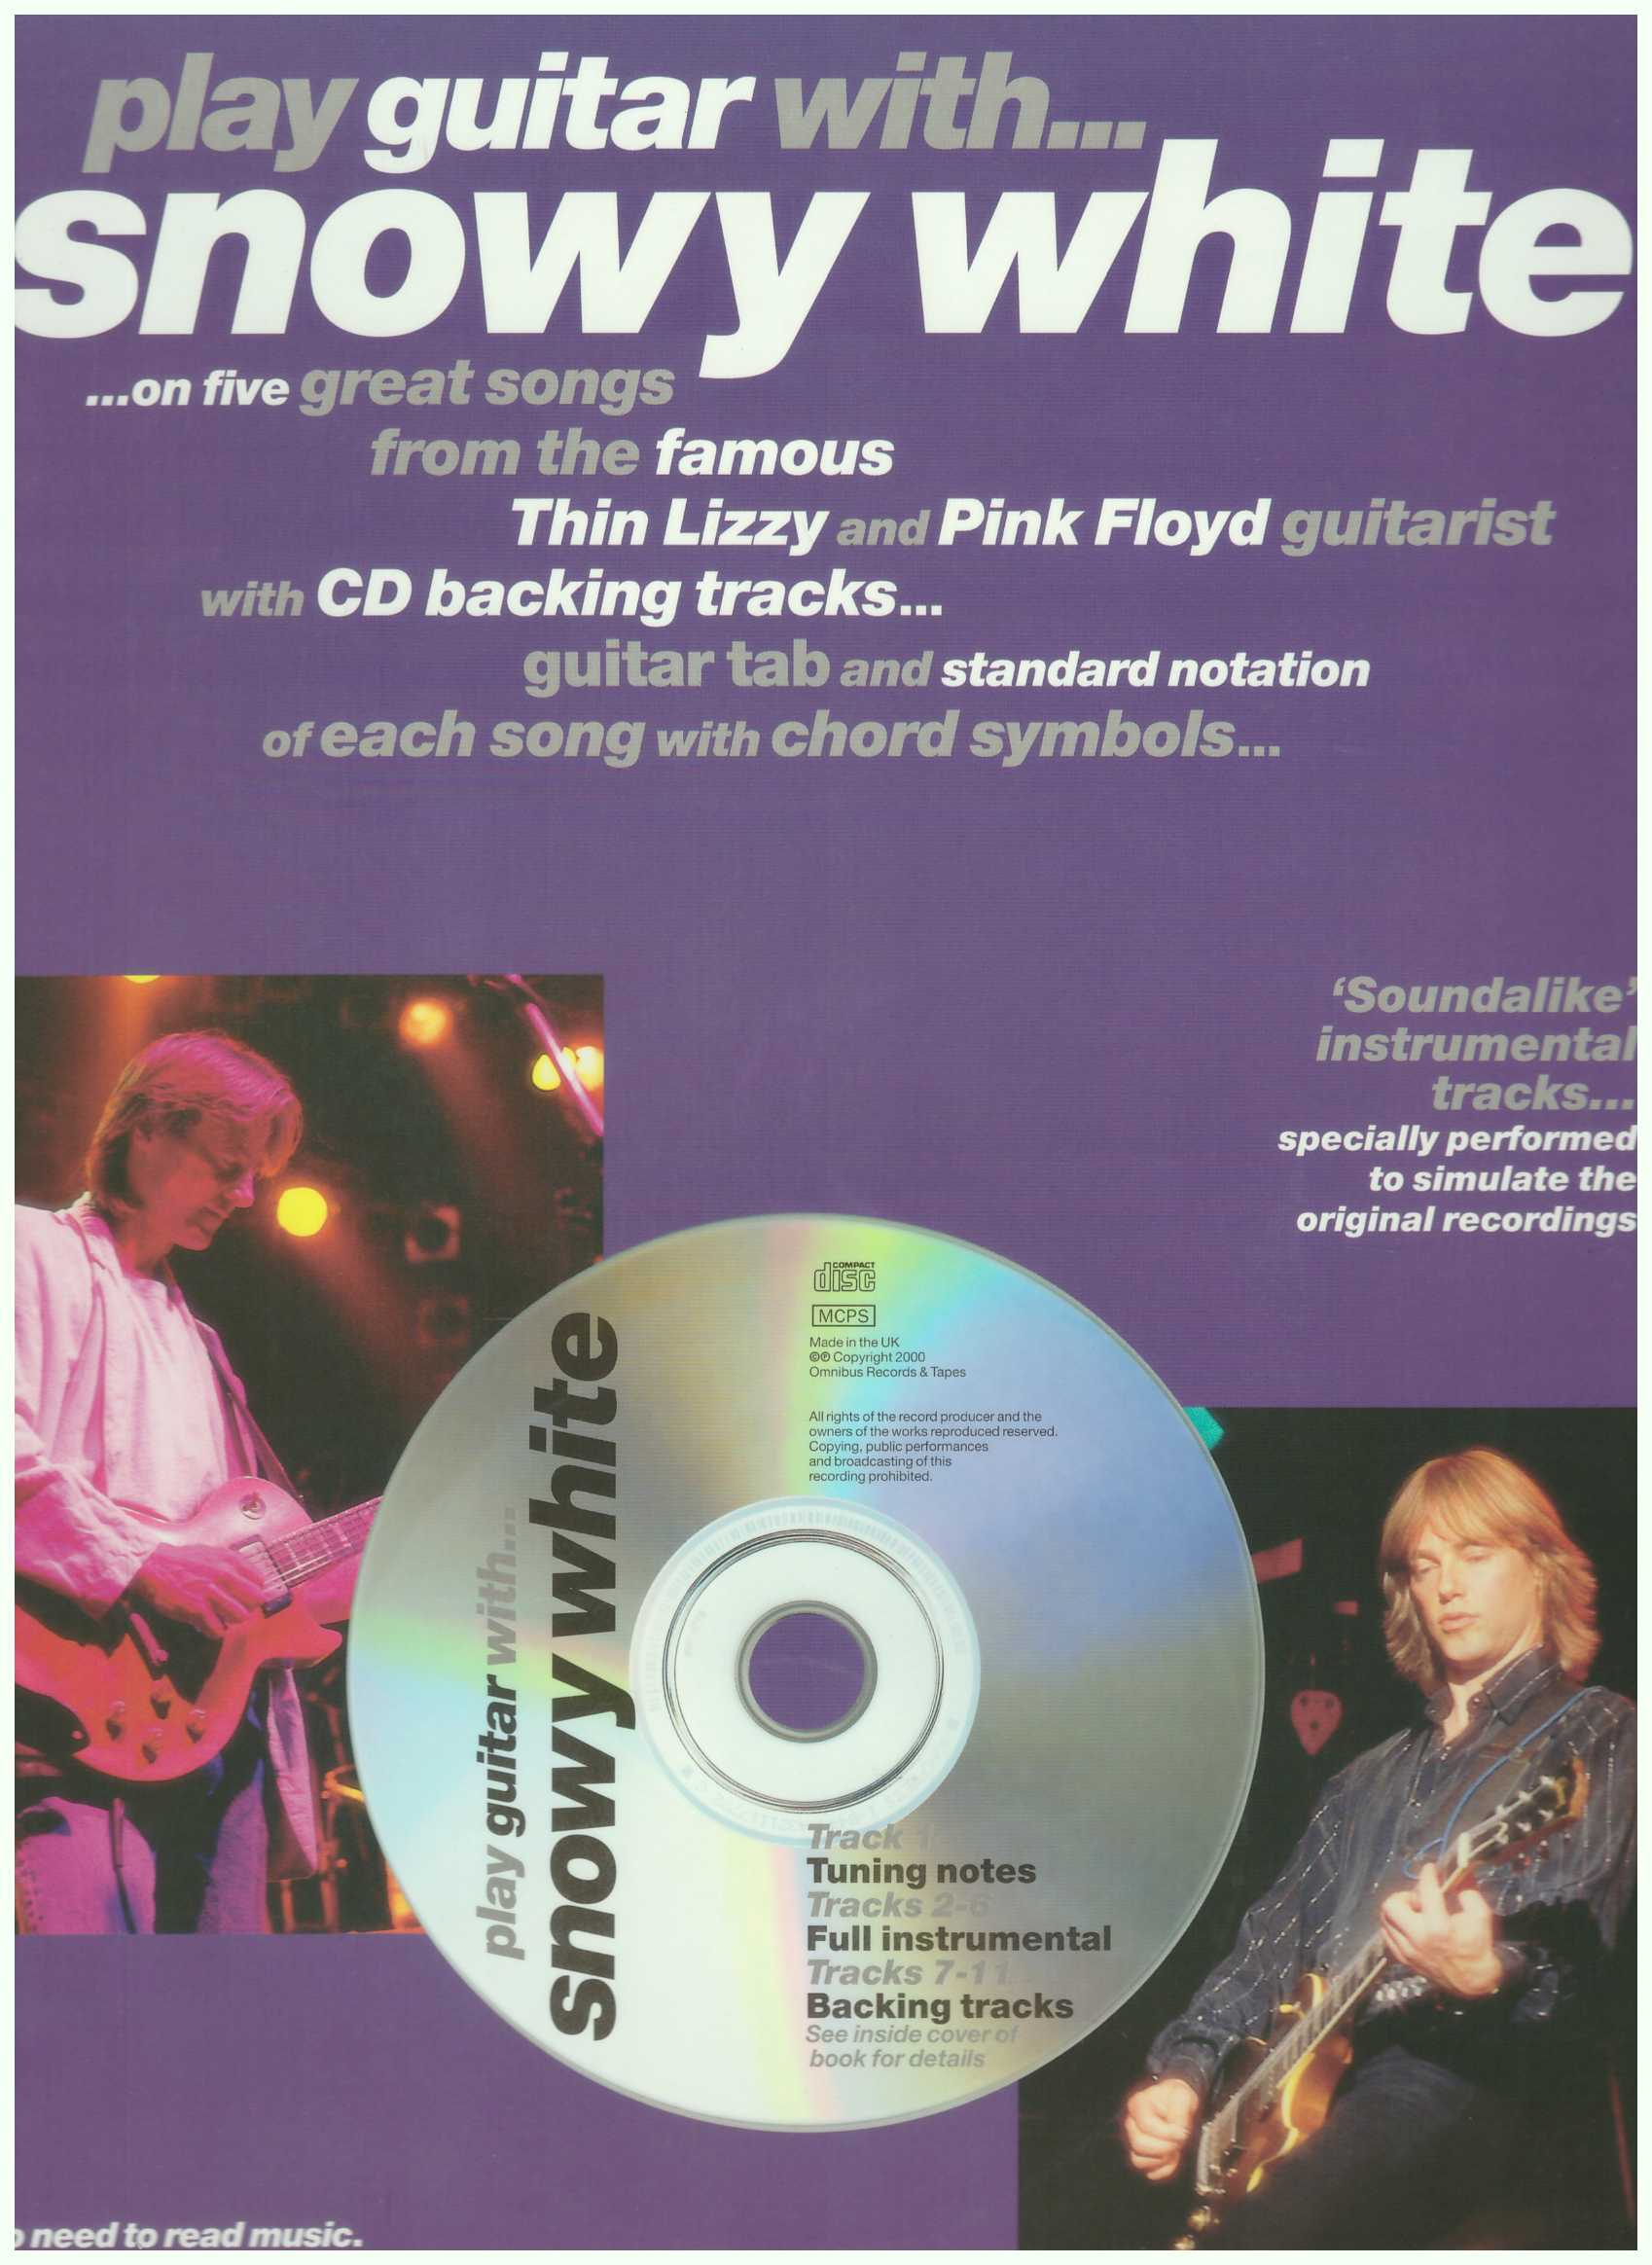 Play Guitar With... Snowy White / Vocal Book / Voice Book / Guitar Book / Tab Book / Guitar Tab Book